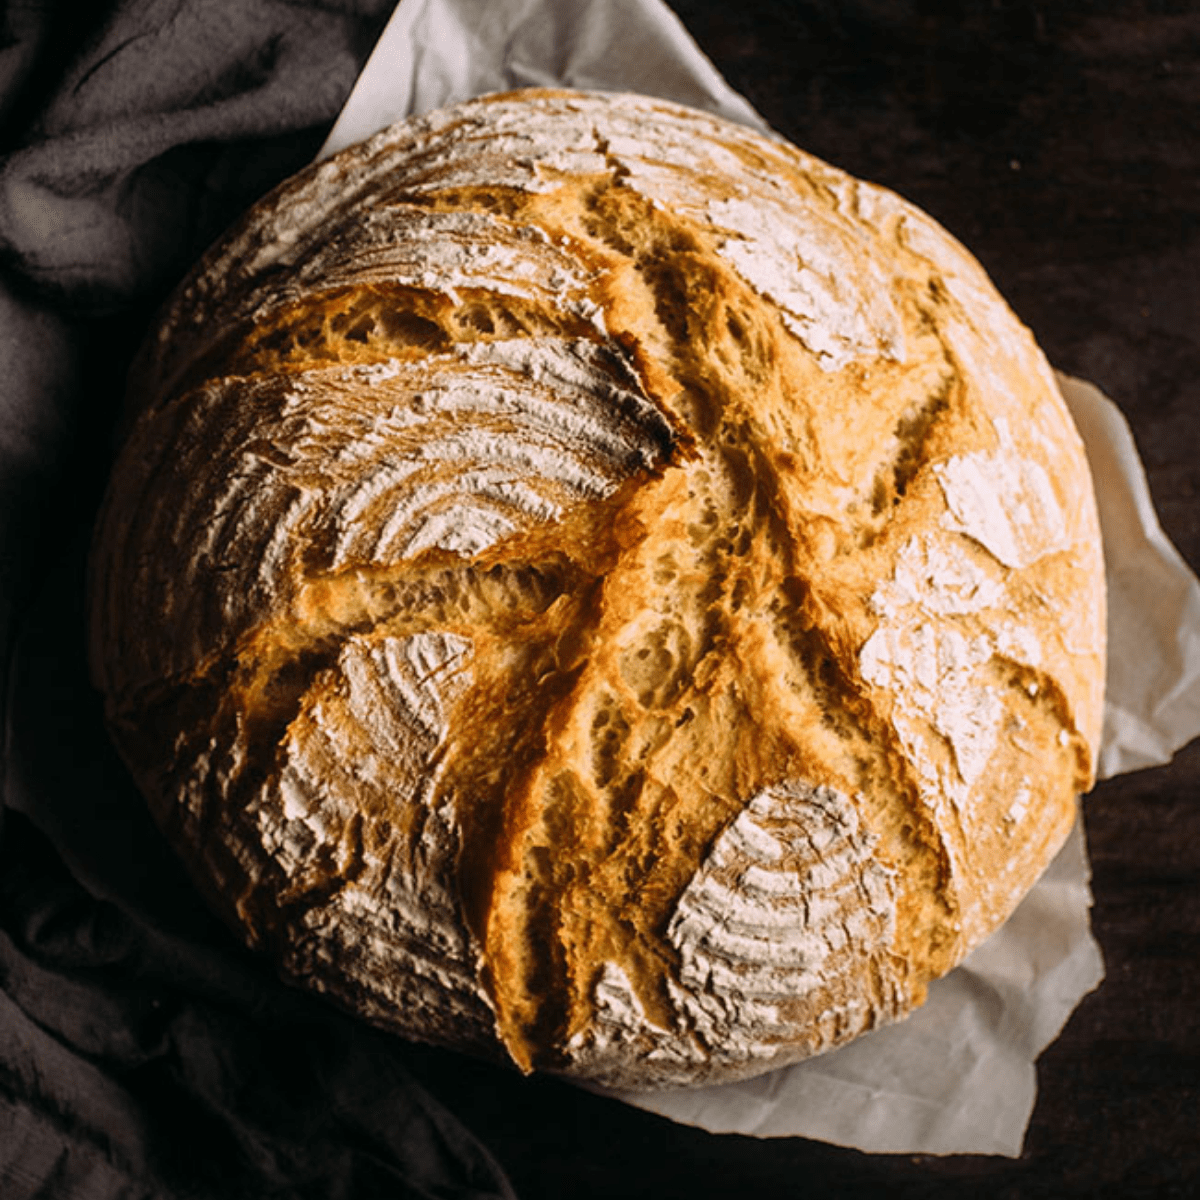 A loaf of homemade french bread on a dark background.